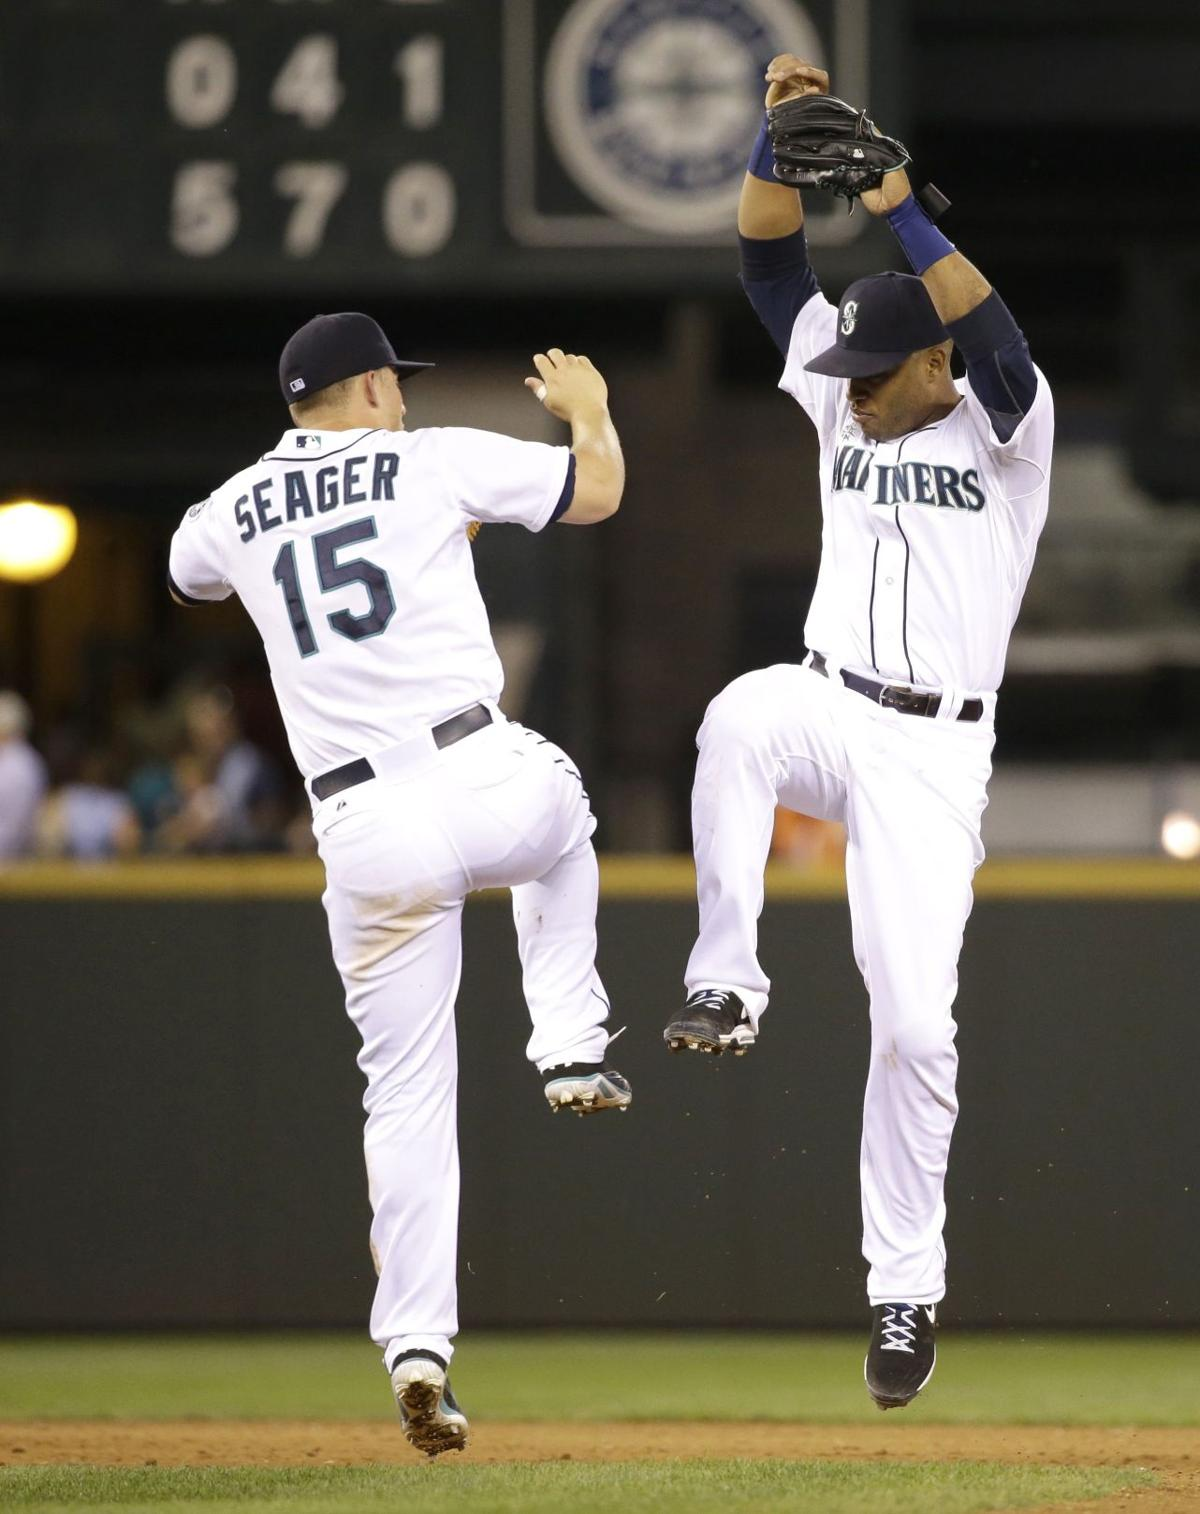 Paxton, Cano are too much for Rangers